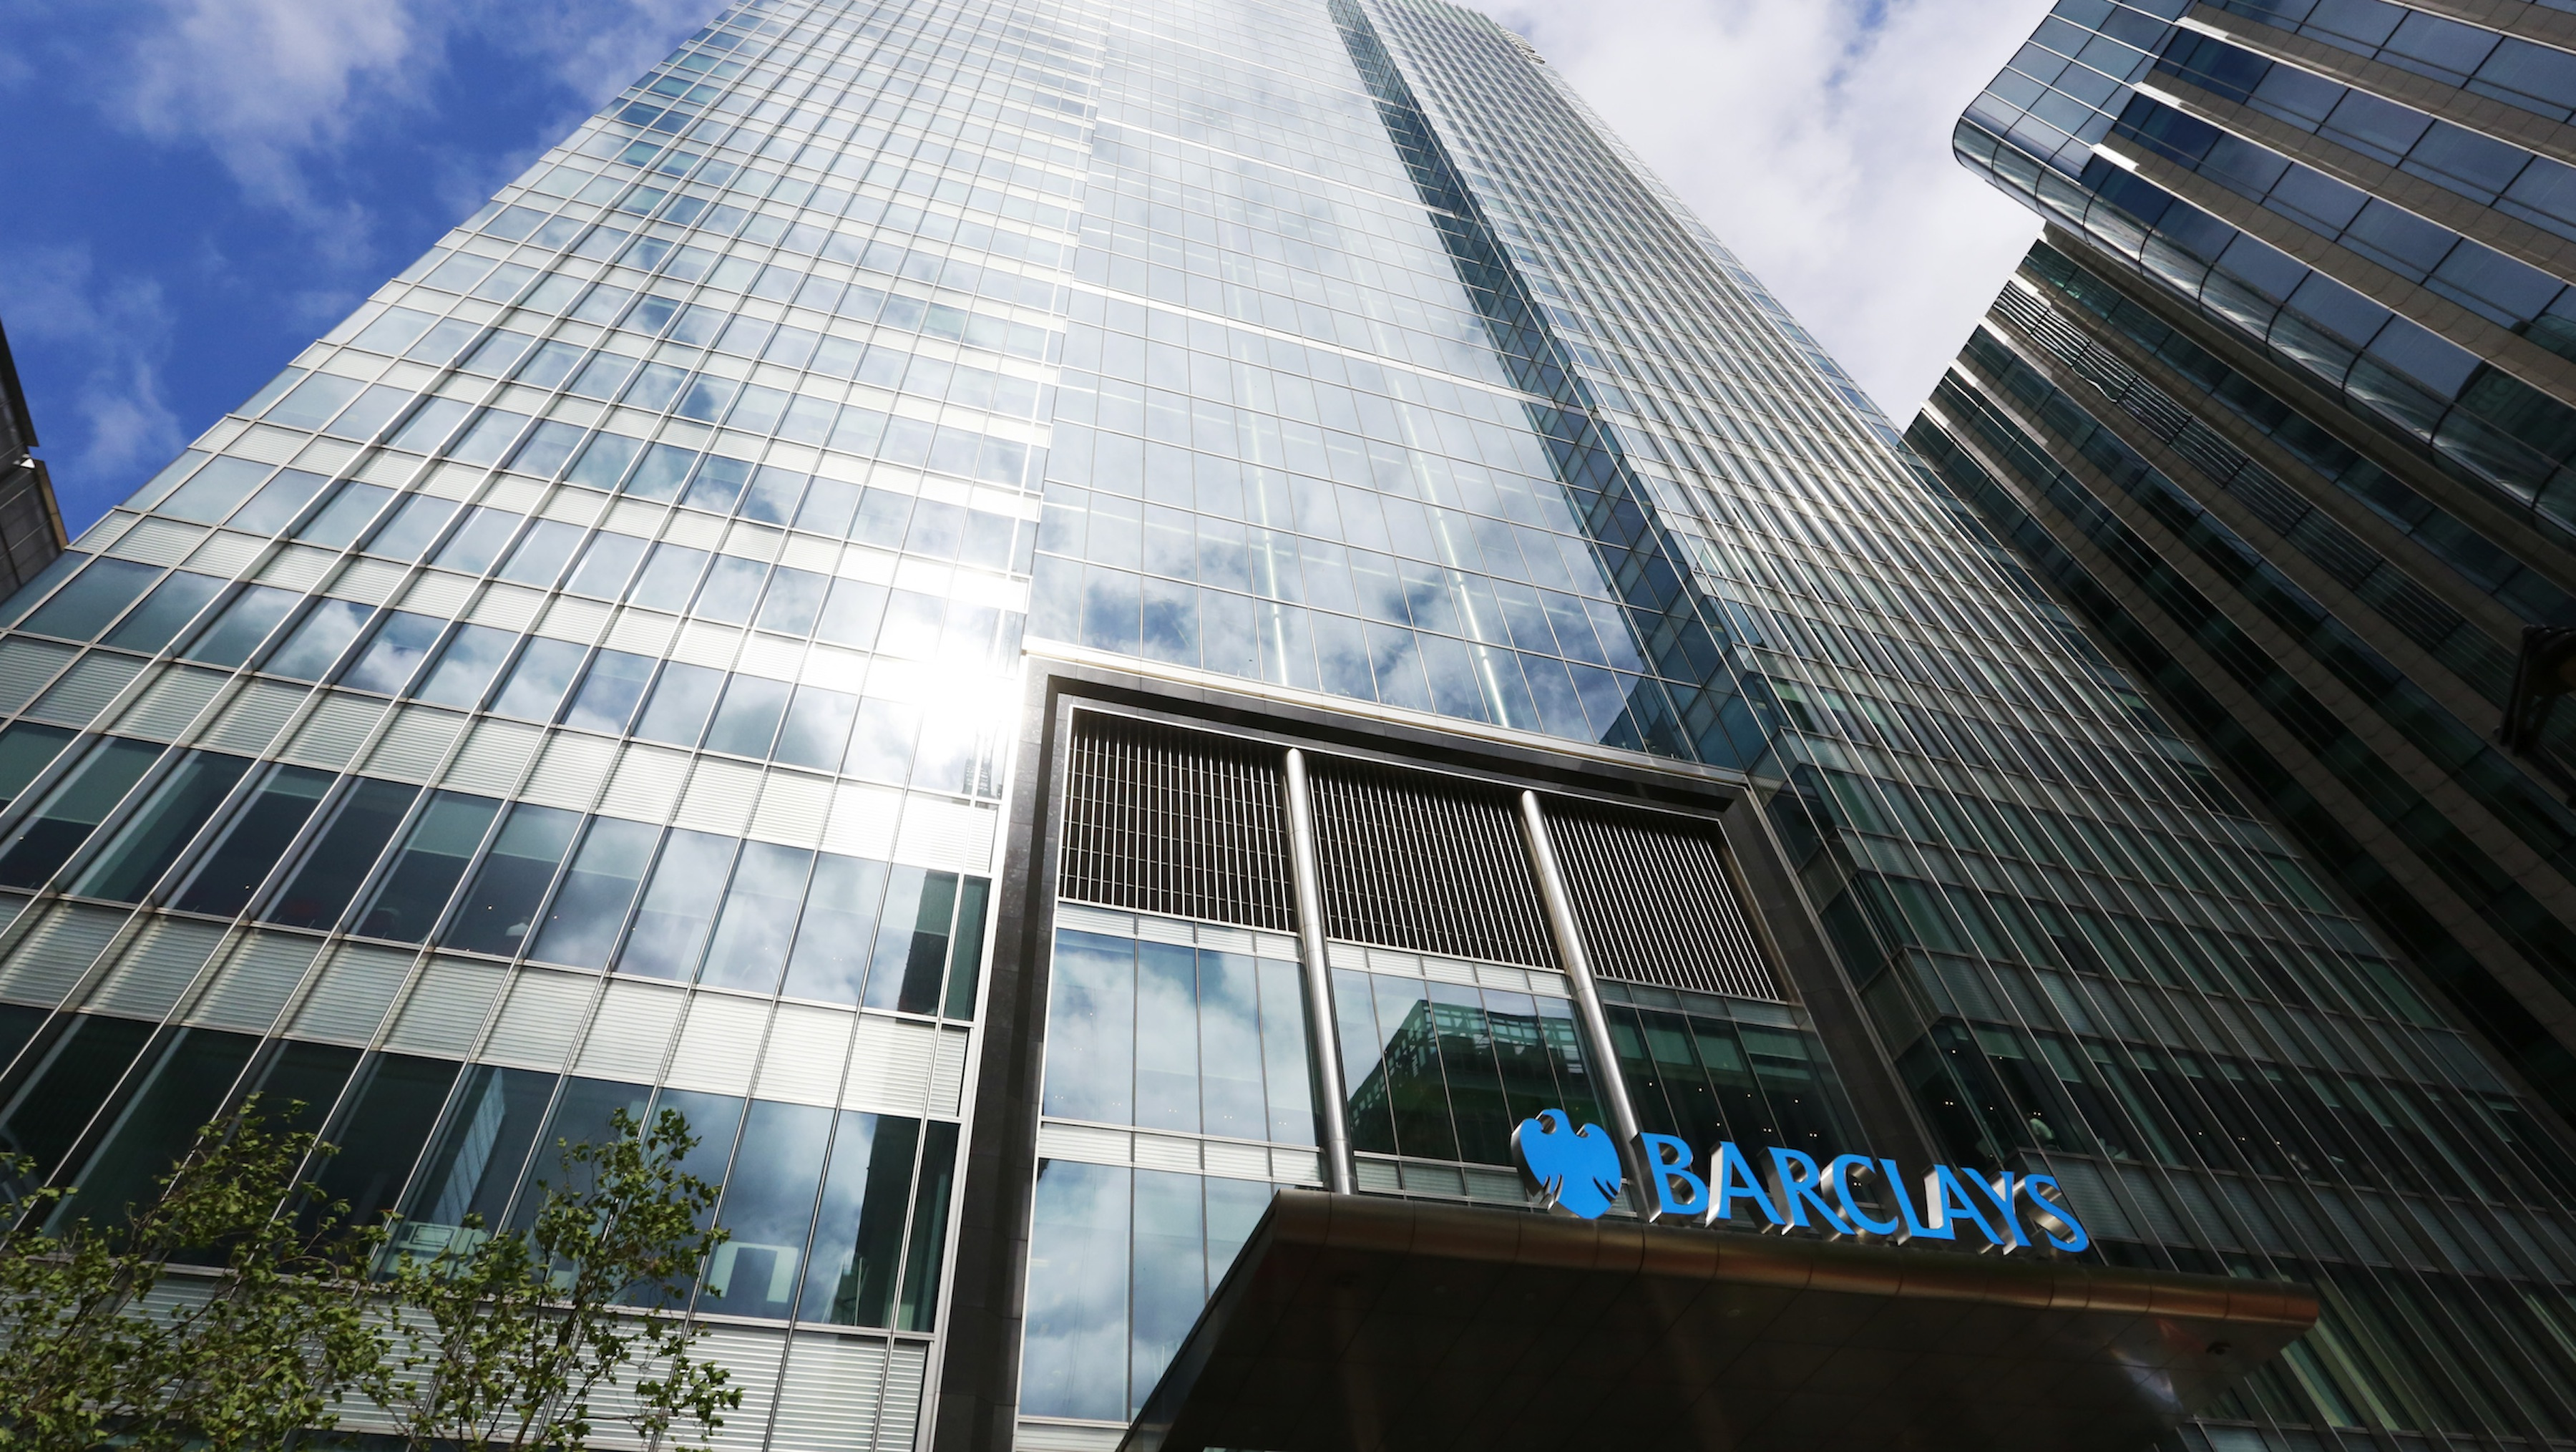 Barclays bank headquarters is seen in Canary Wharf, east London August 30, 2012. Barclays named retail banker Antony Jenkins as chief executive on Thursday, signalling a shift of emphasis from investment banking after the interest rate-setting scandal that brought down his American predecessor Bob Diamond. REUTERS/Olivia Harris (BRITAIN - Tags: BUSINESS) - RTR379Y3